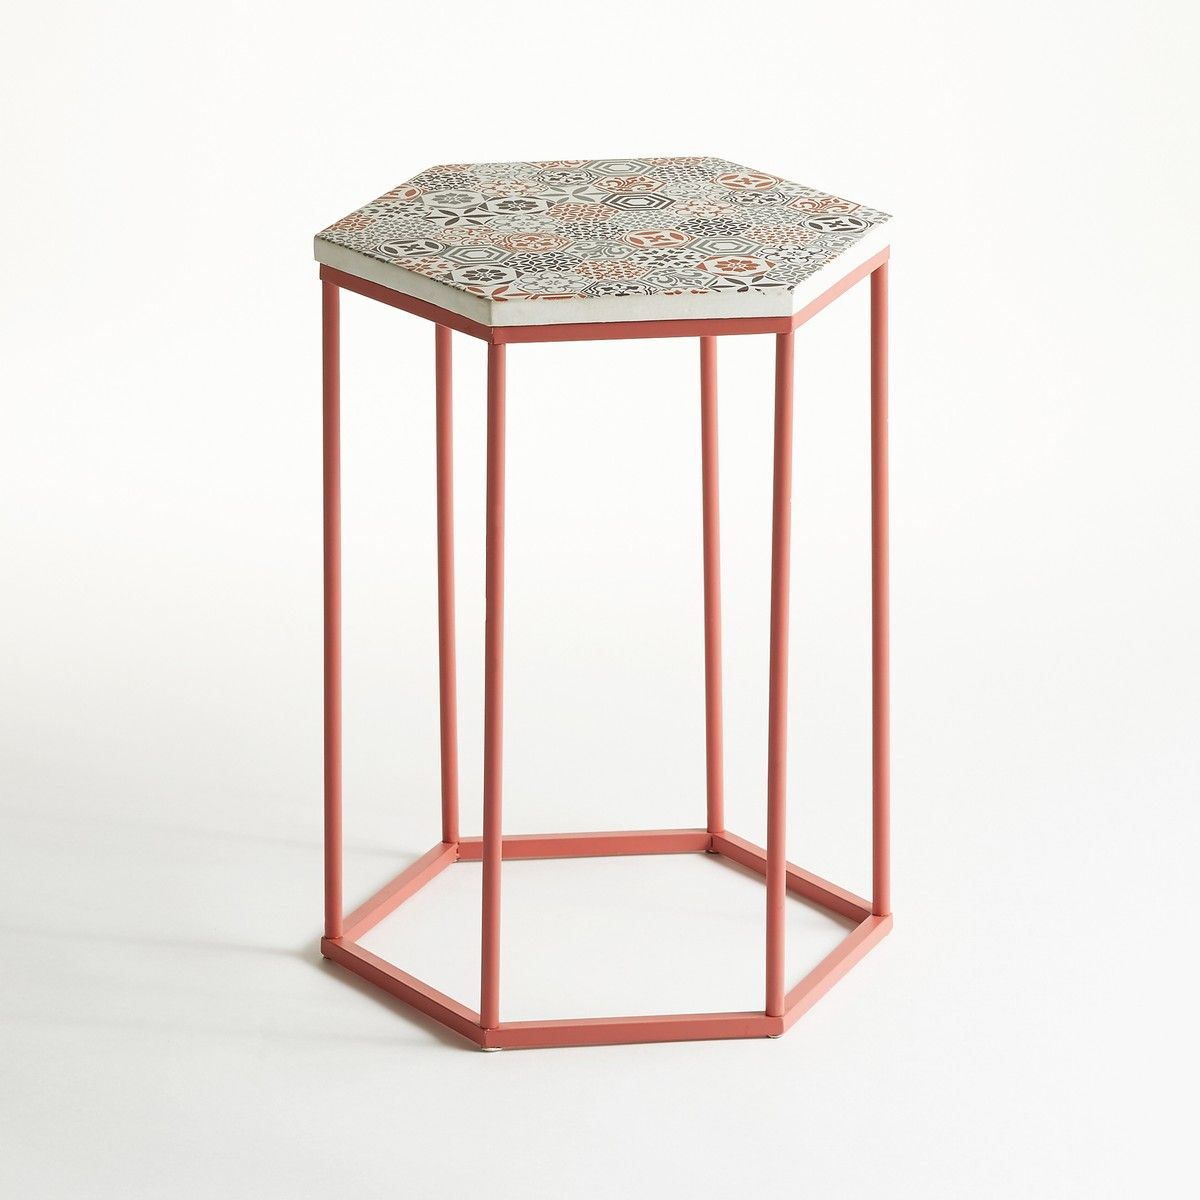 Topim Coffee Table Pedestal Table with Ceramic Top